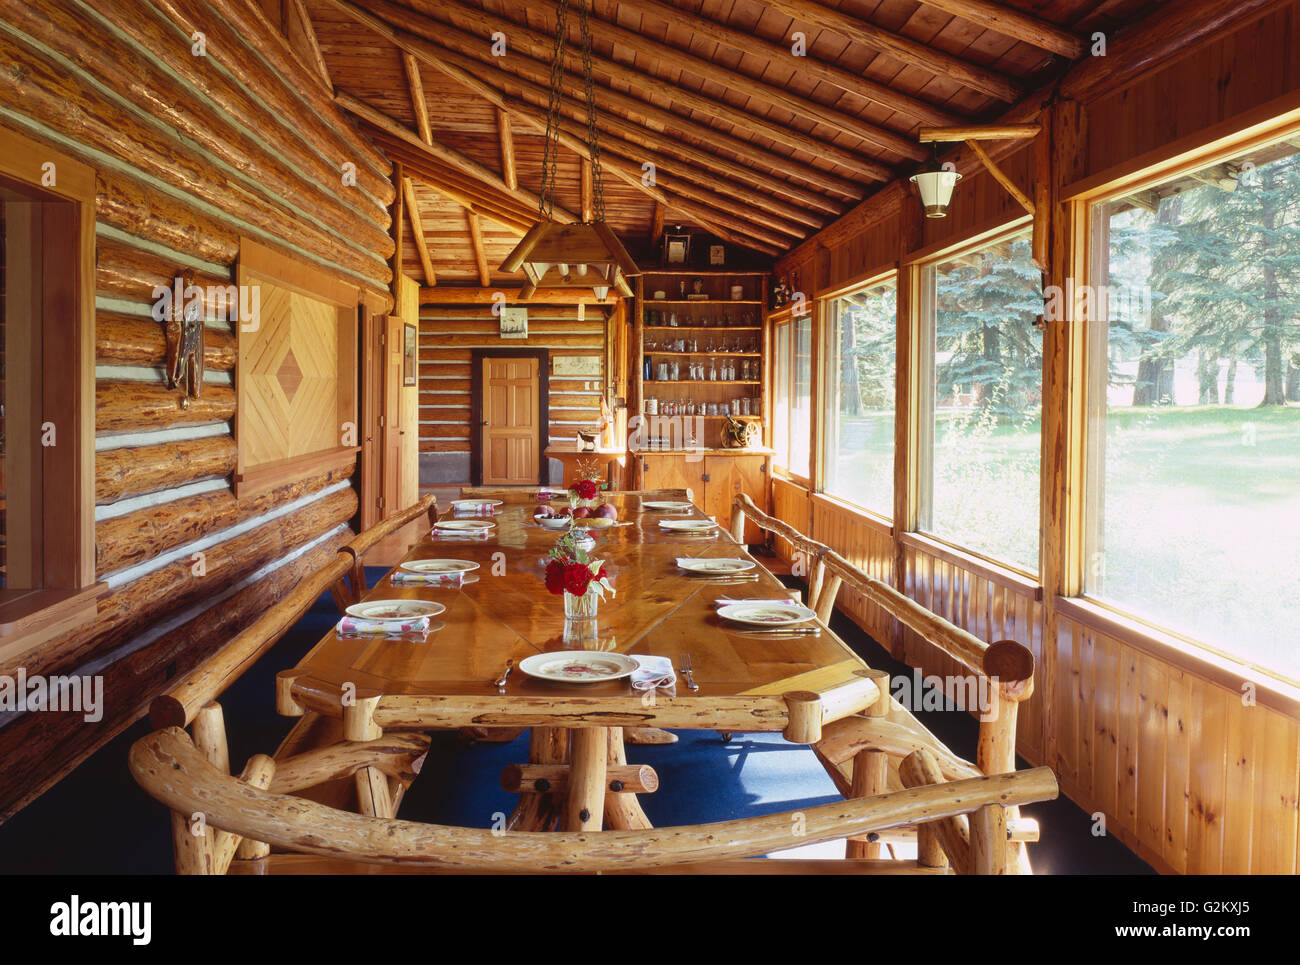 Log Cabin Dining Room - Stock Image